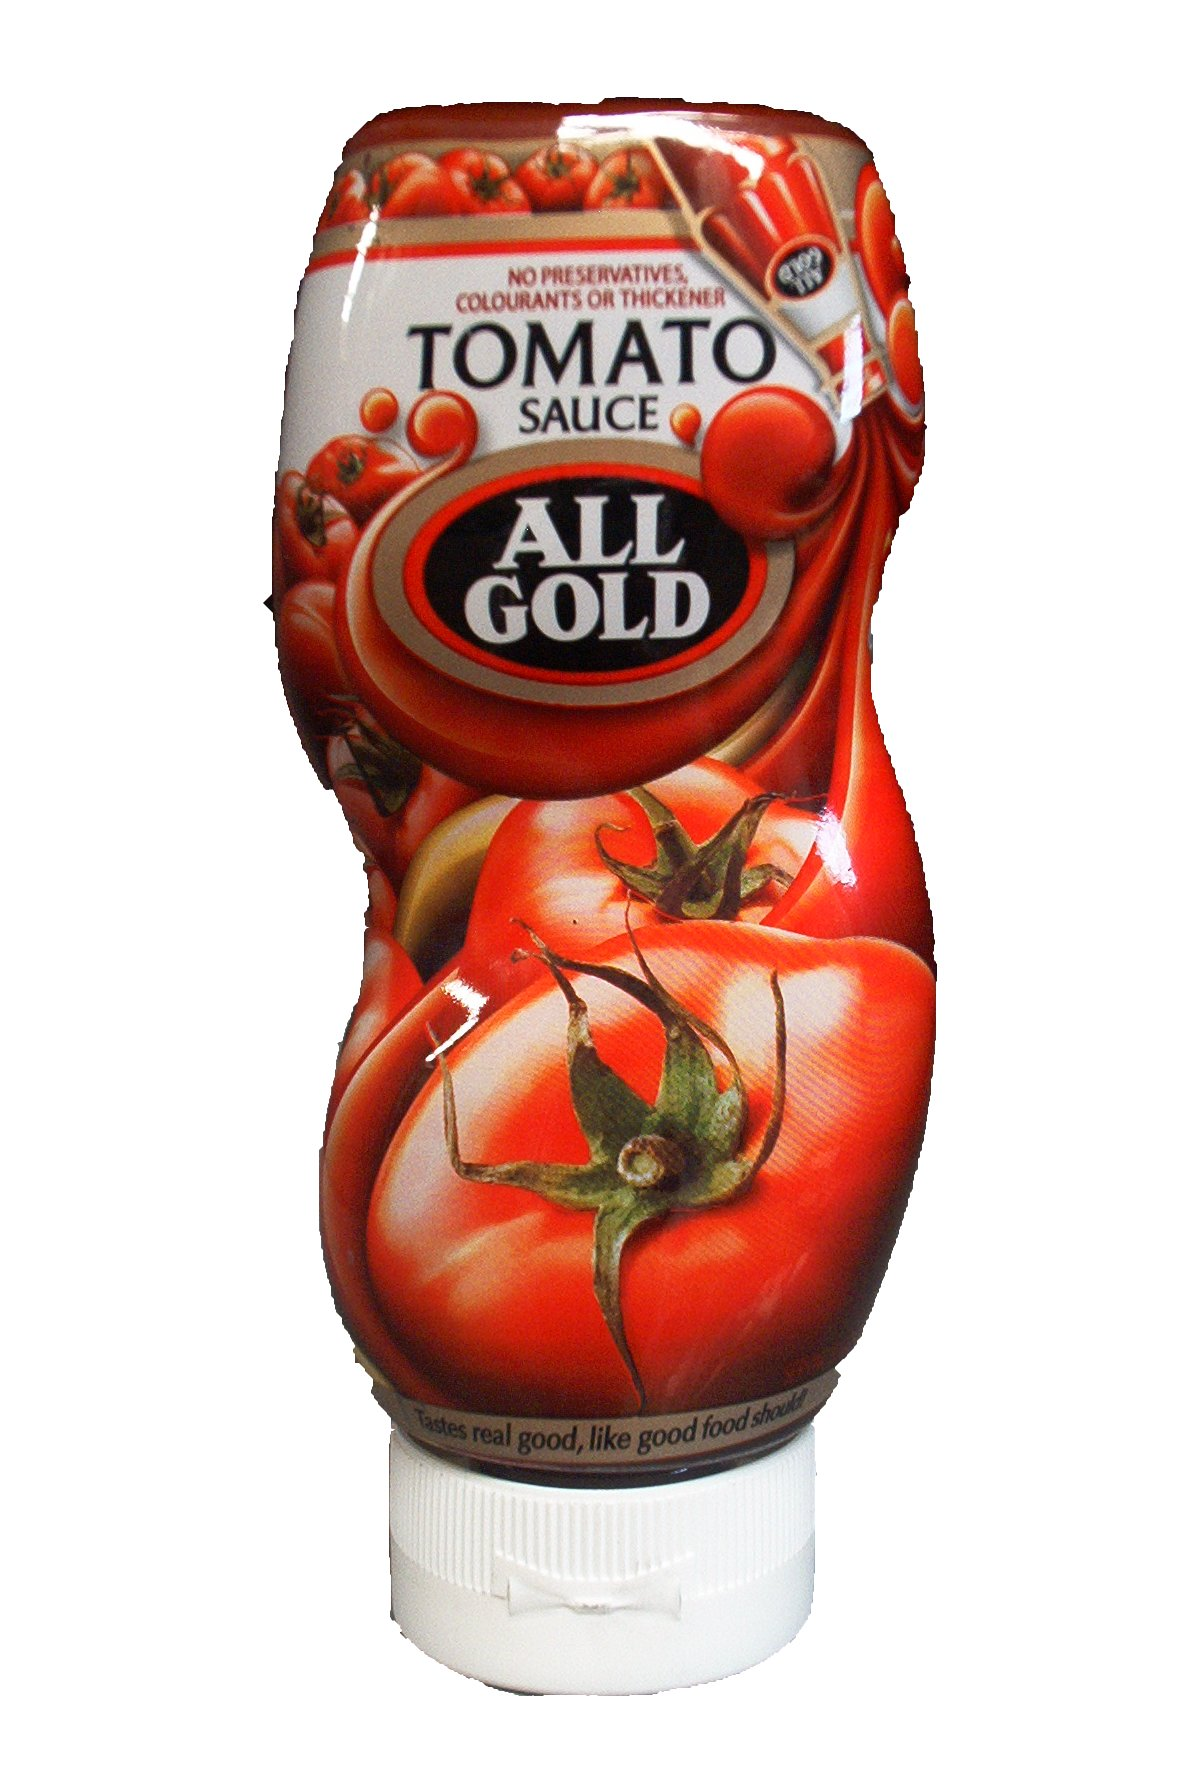 All Red Gold Tomato Products Are Important Sources Of Lycopene A ...